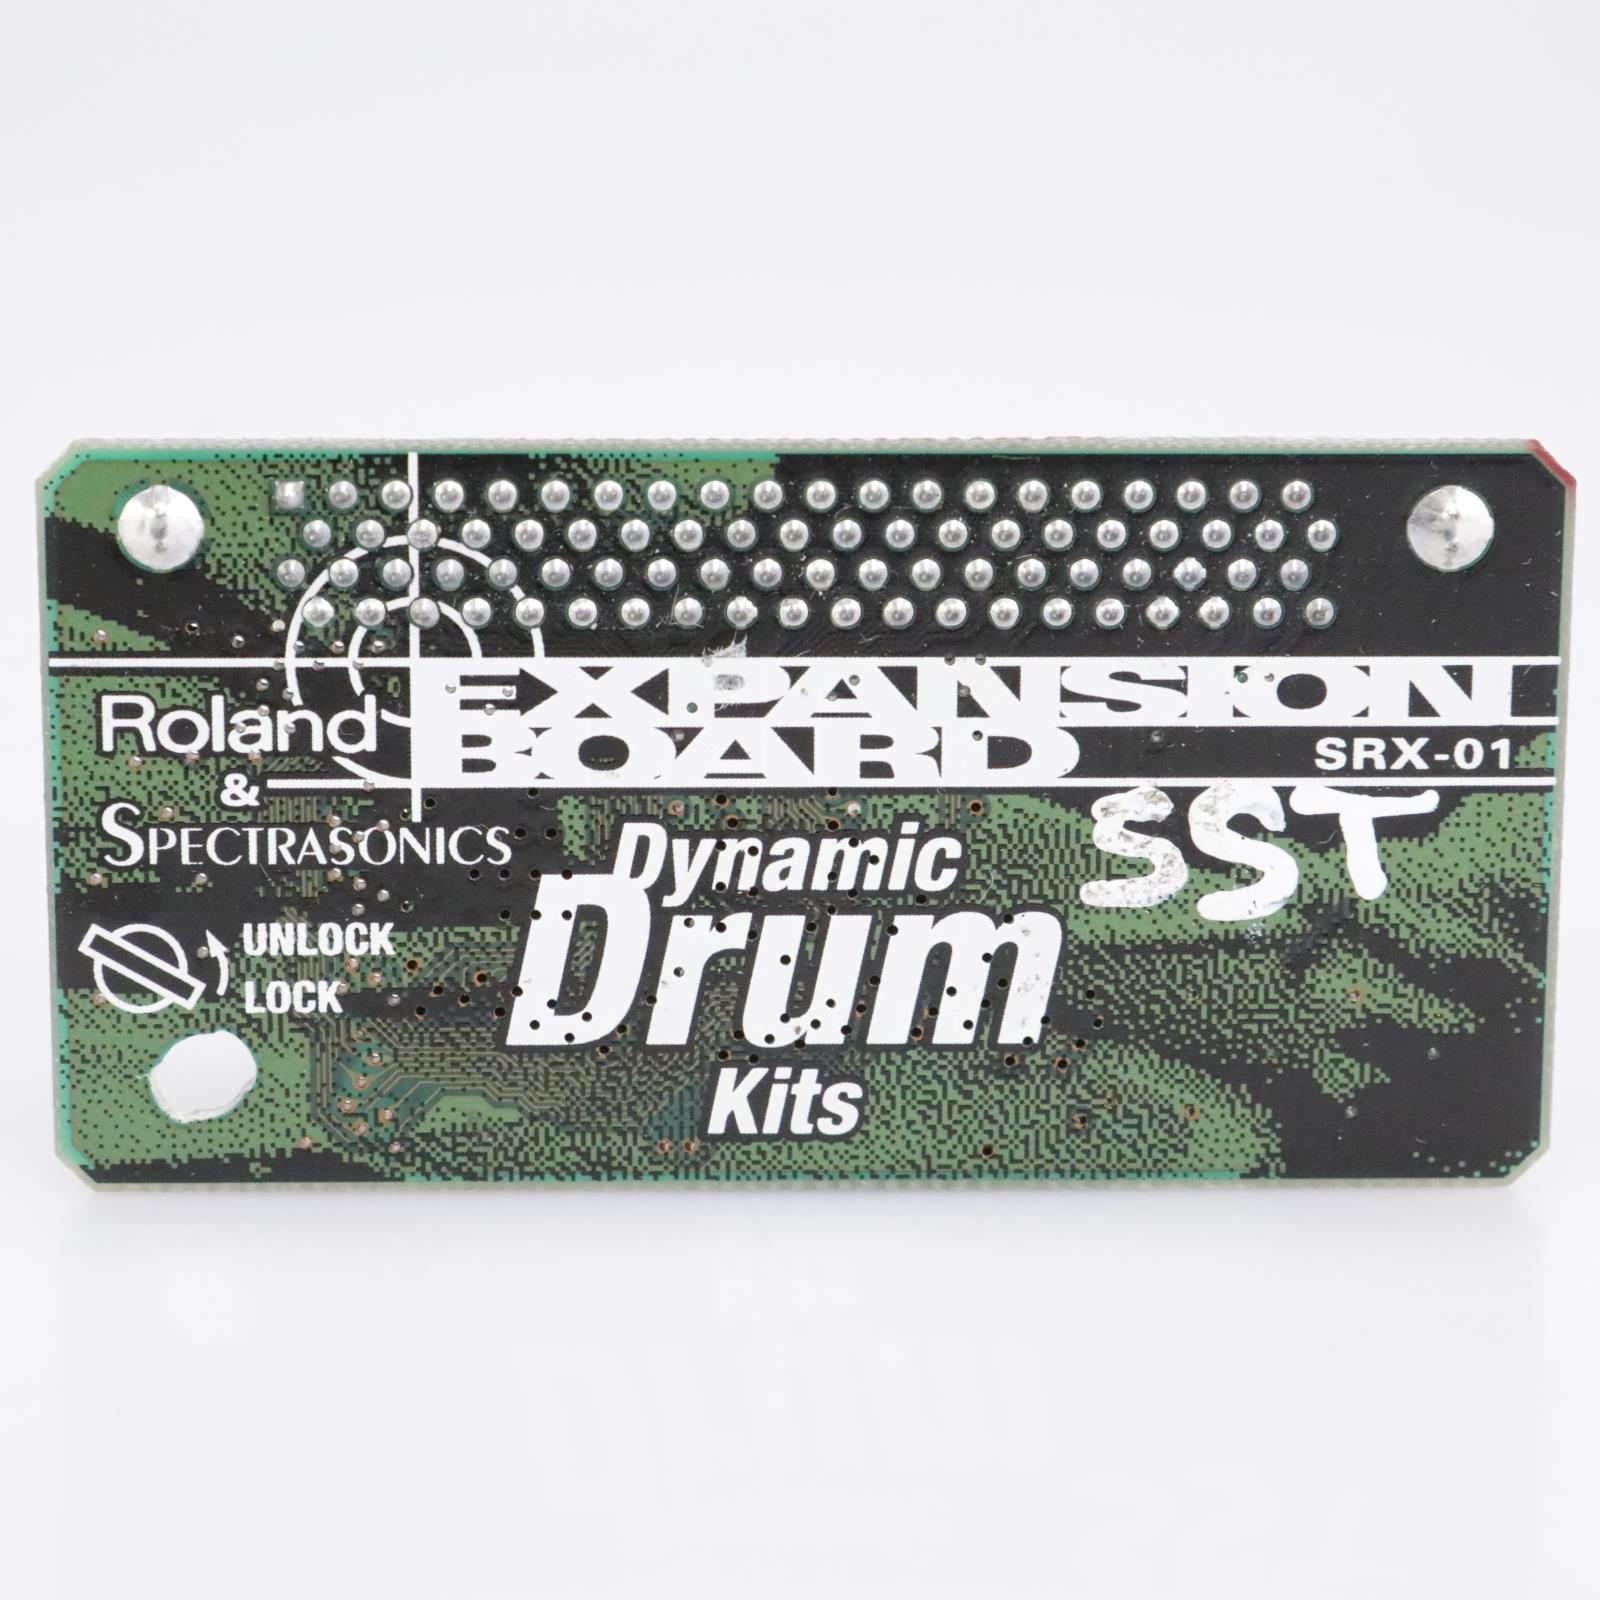 Roland SRX-01 Dynamic Drum Kits Expansion Board #41649